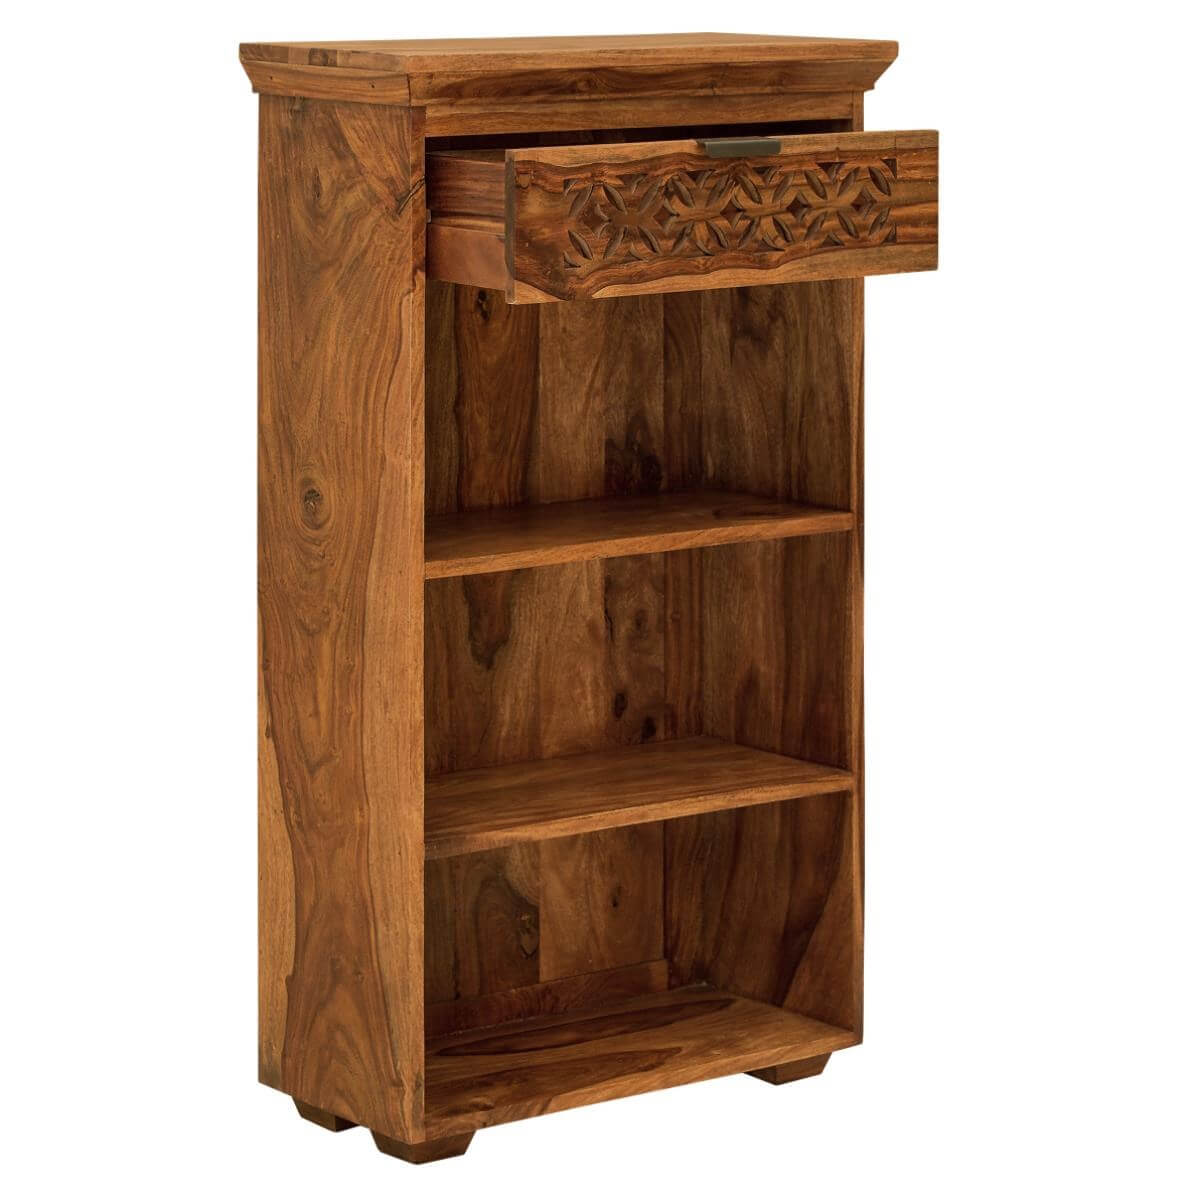 small sheesham bookcase with a drawer and fretwork detailing